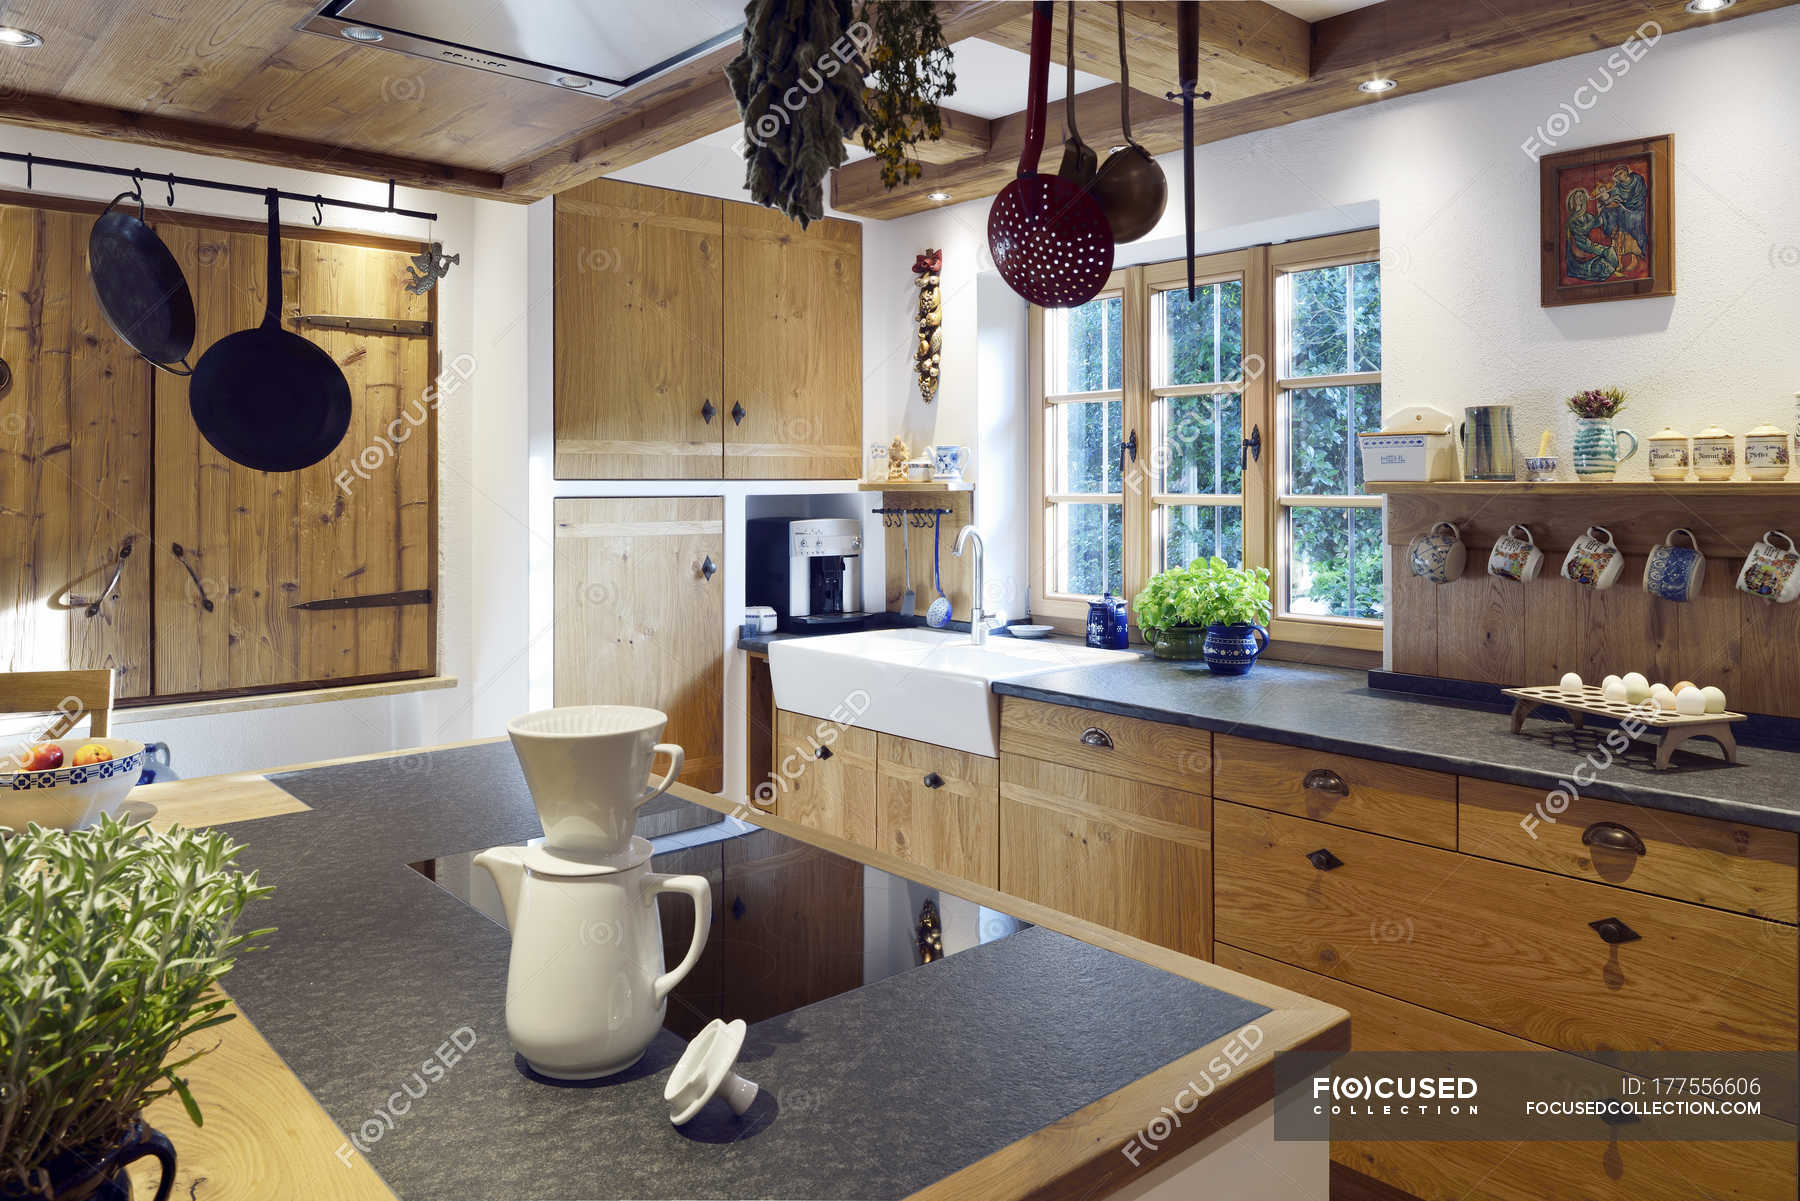 Rustic Country Style Home With Kitchen Island Indoors